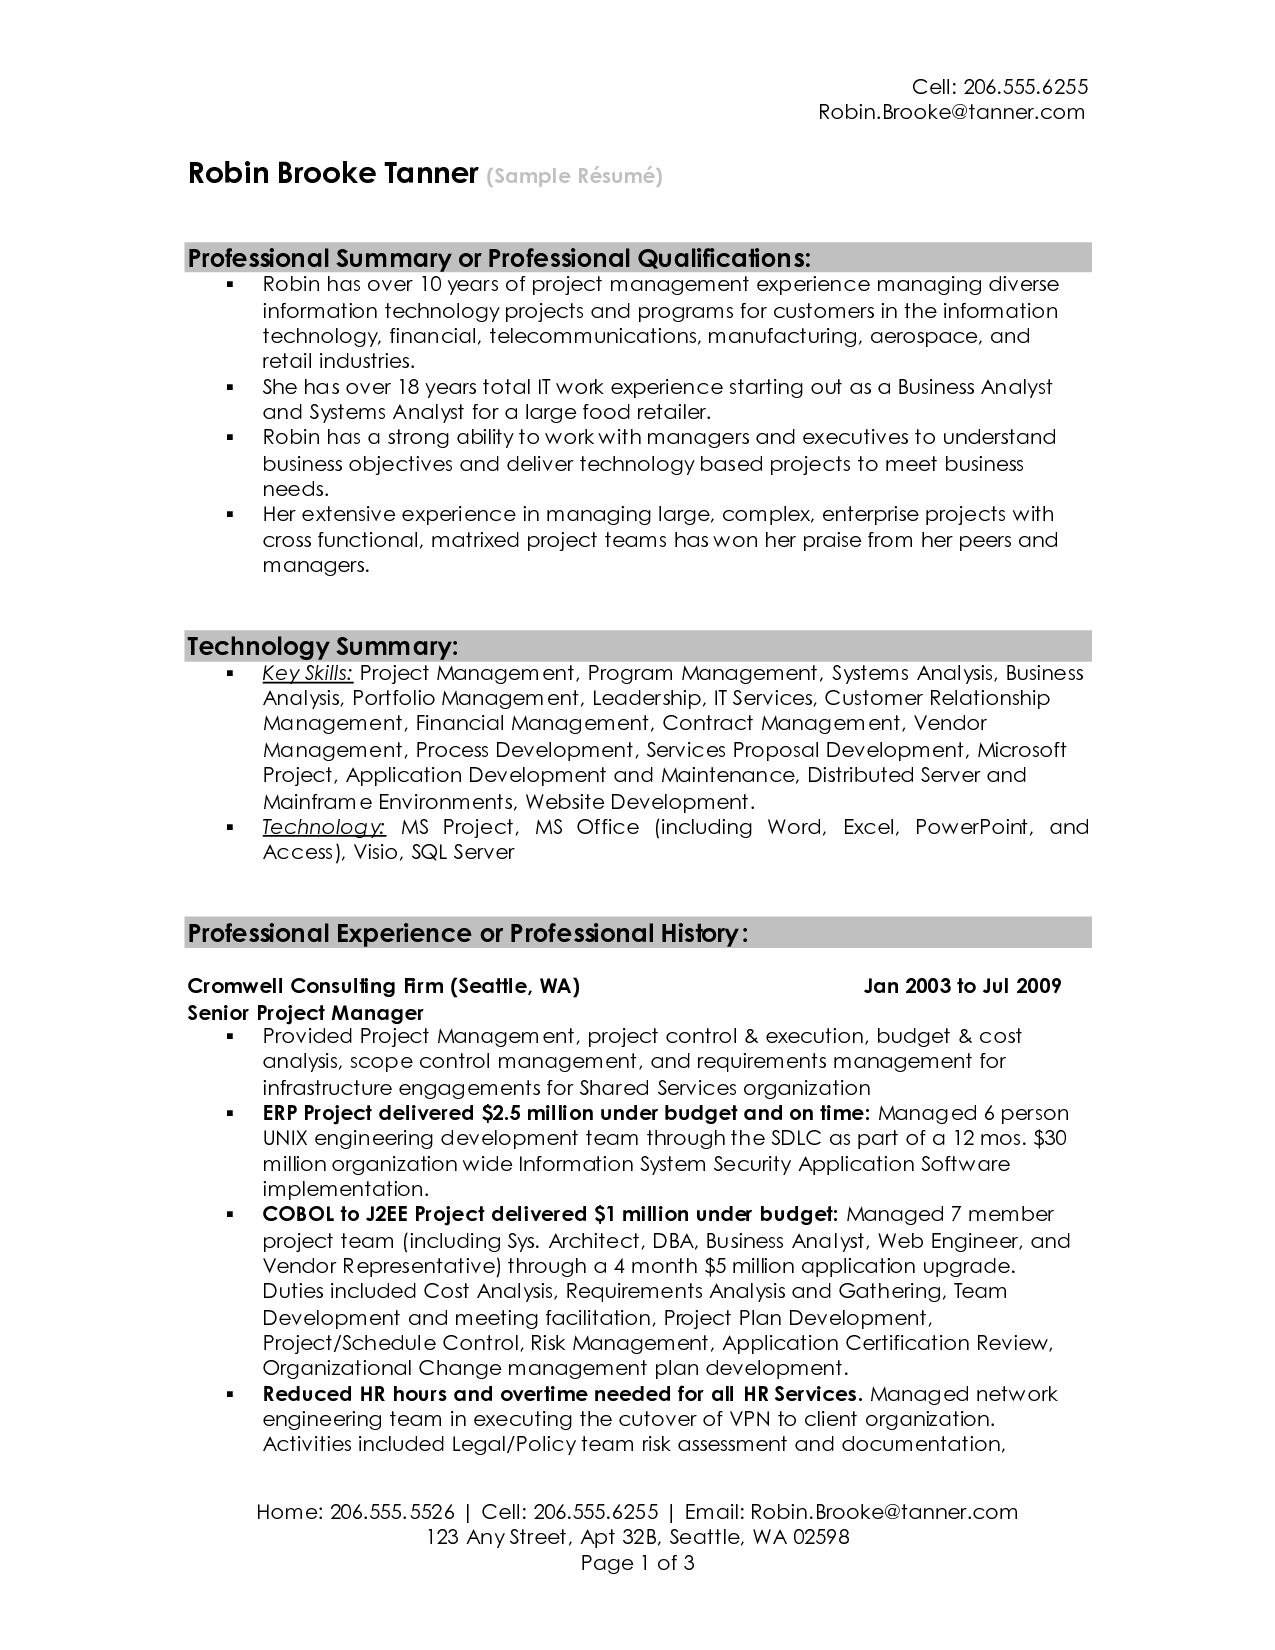 summary resume sample for examples get ideas make drop project manager professional Resume Summary Format For Resume